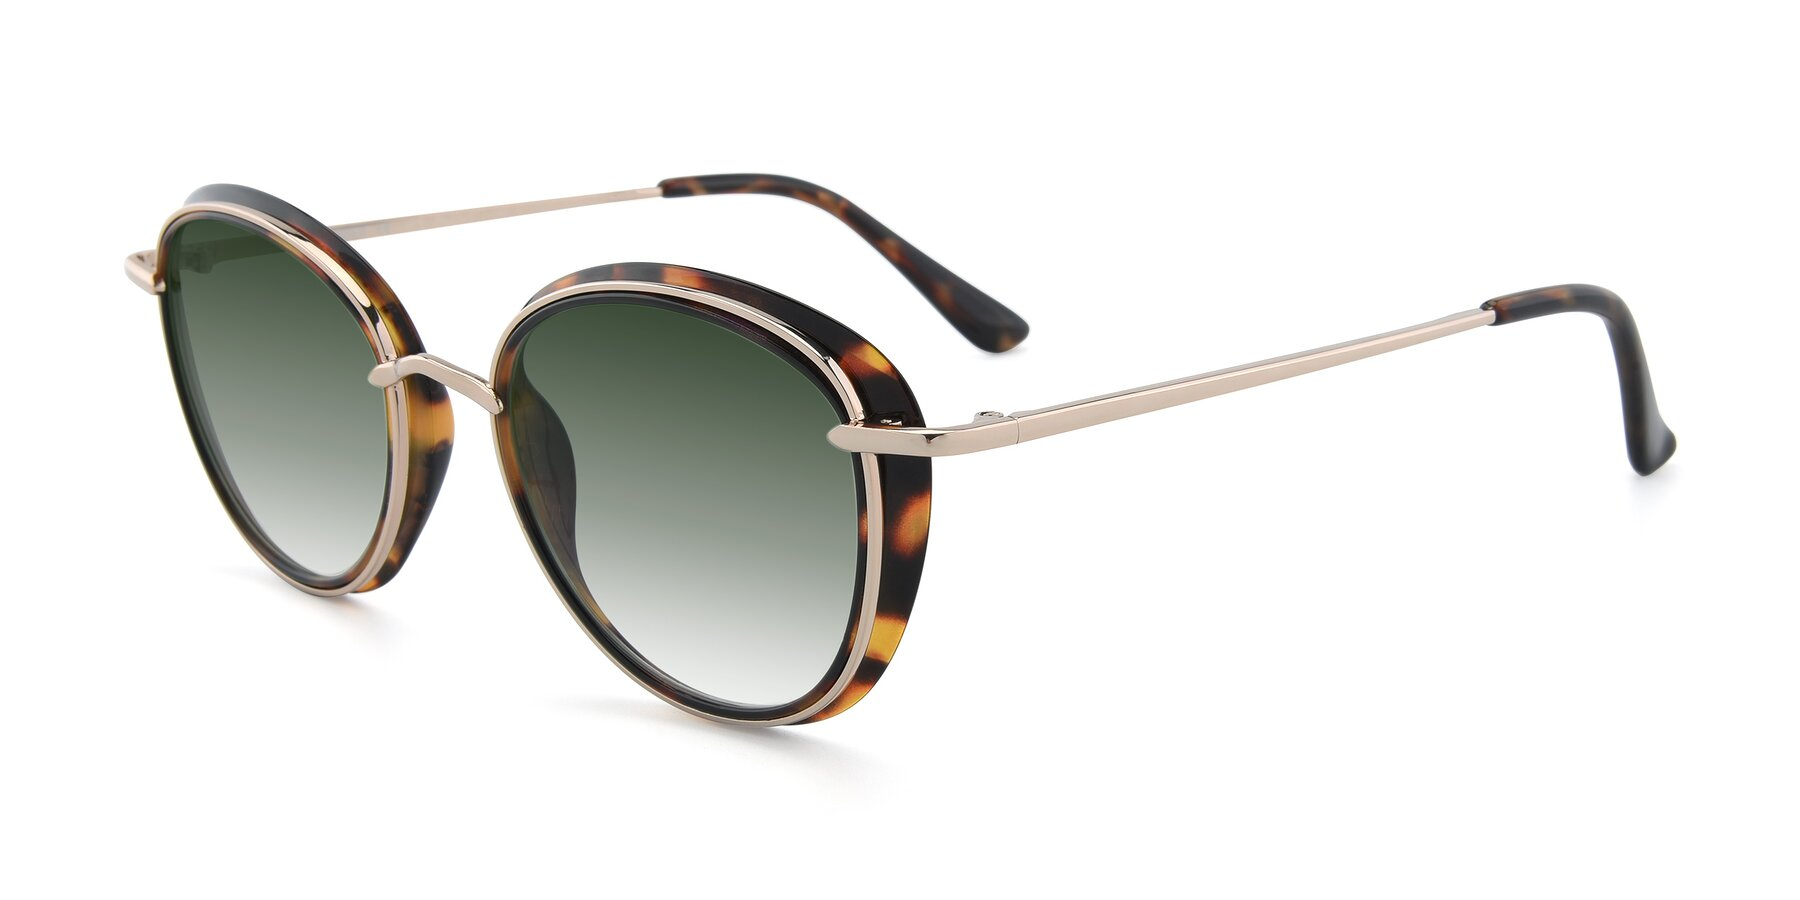 Angle of Cosmopolitan in Tortoise-Silver with Green Gradient Lenses